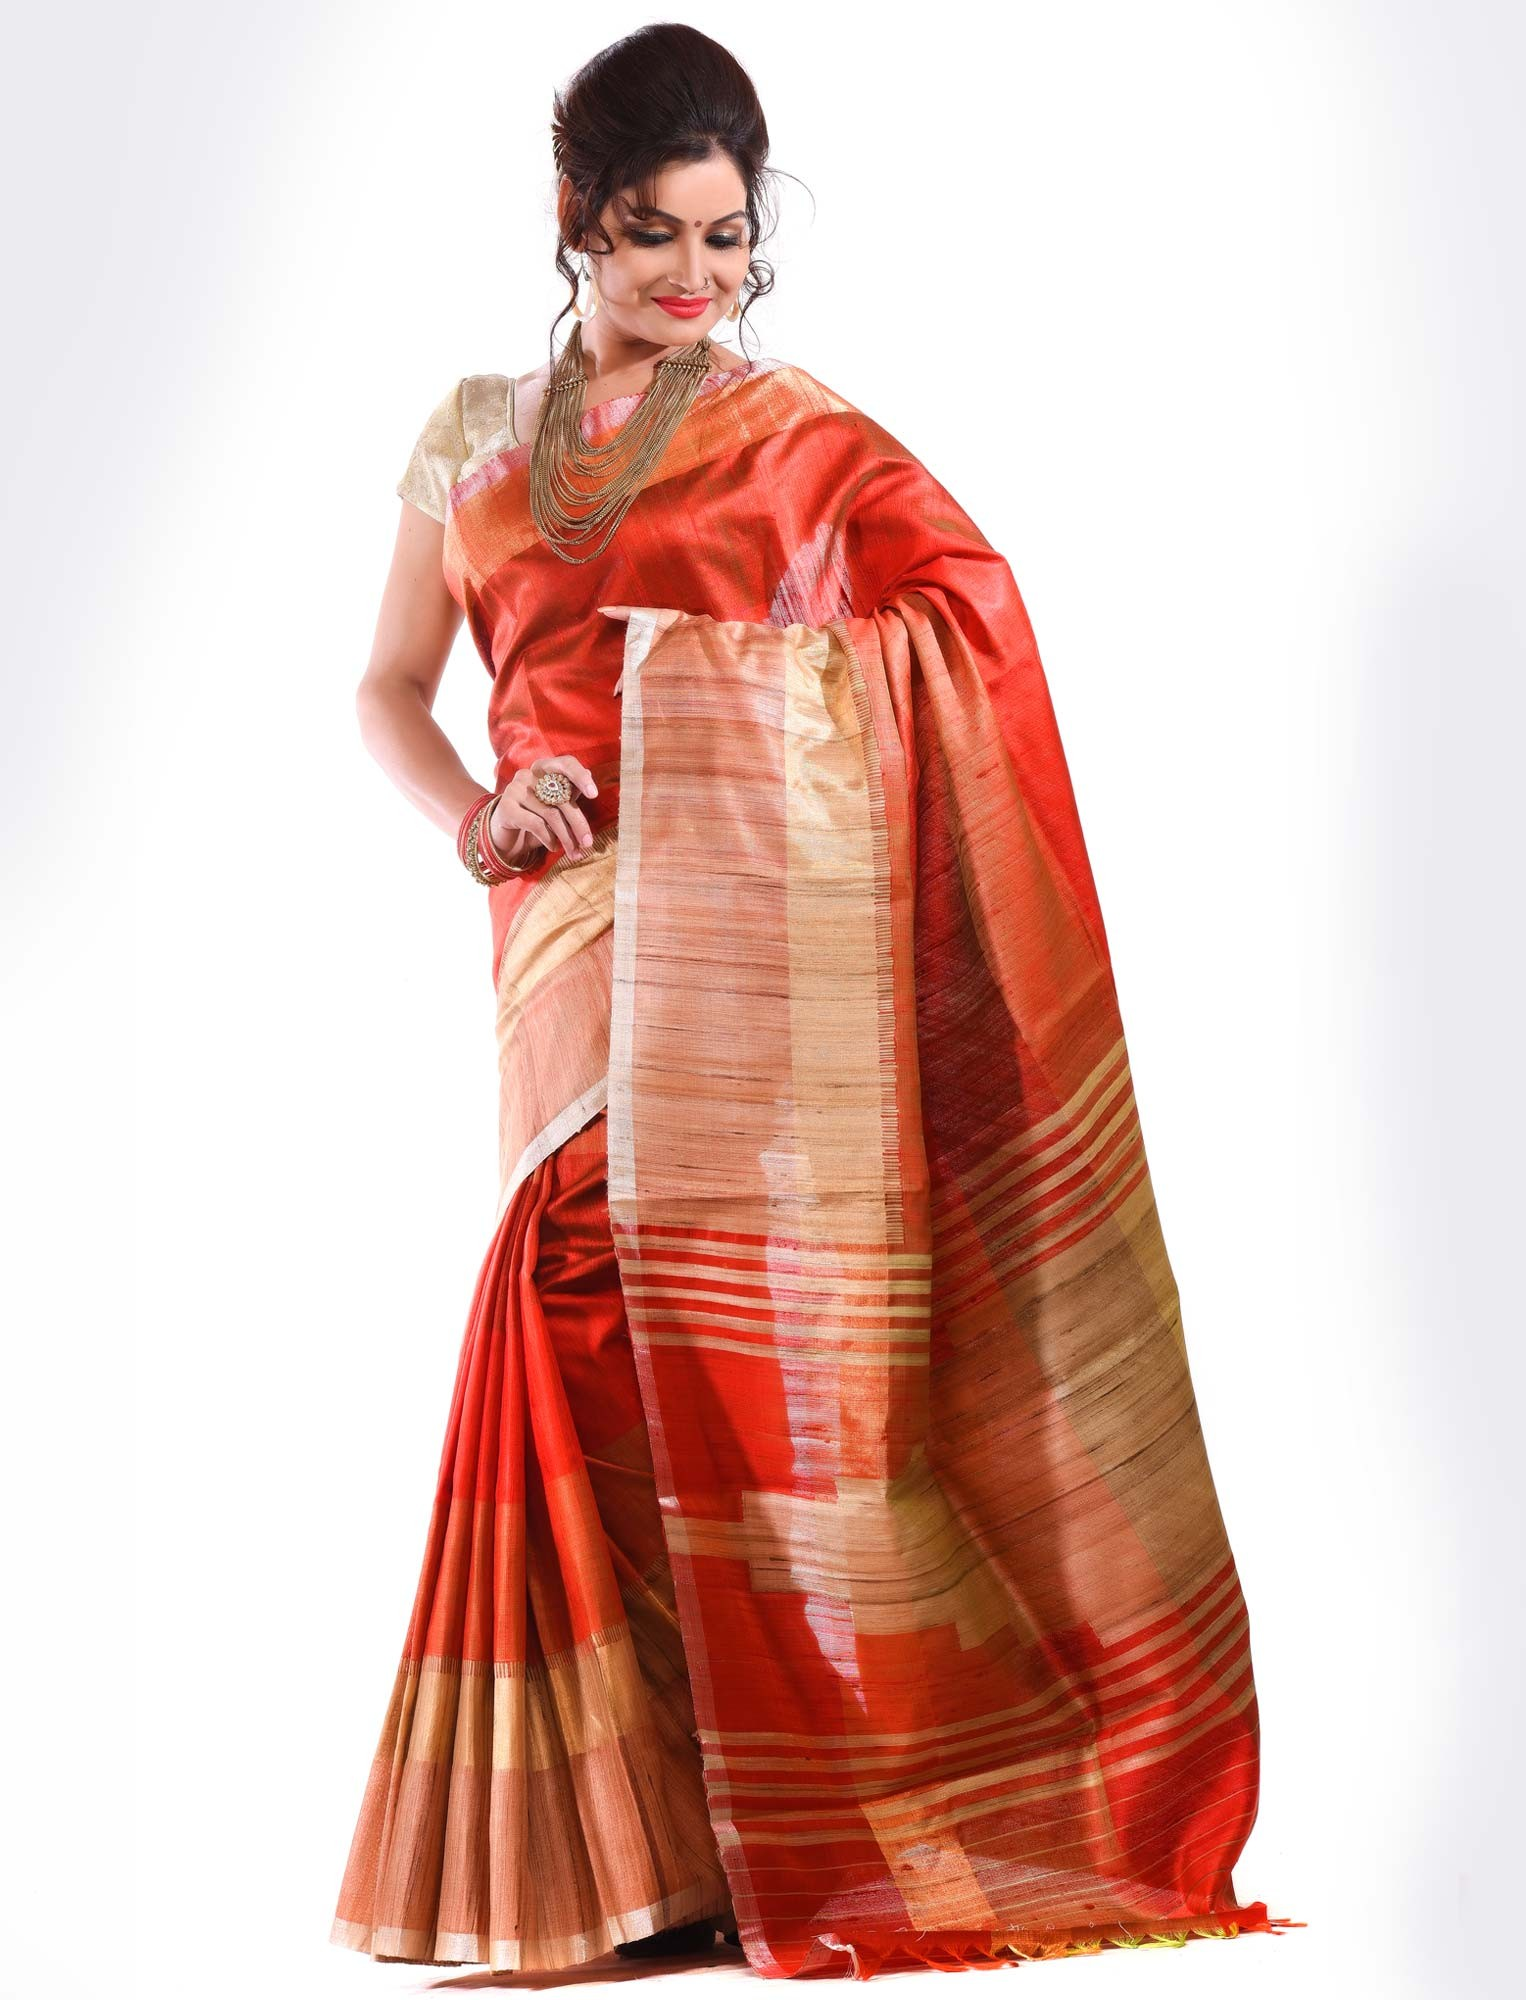 The model in Kosa Saree.